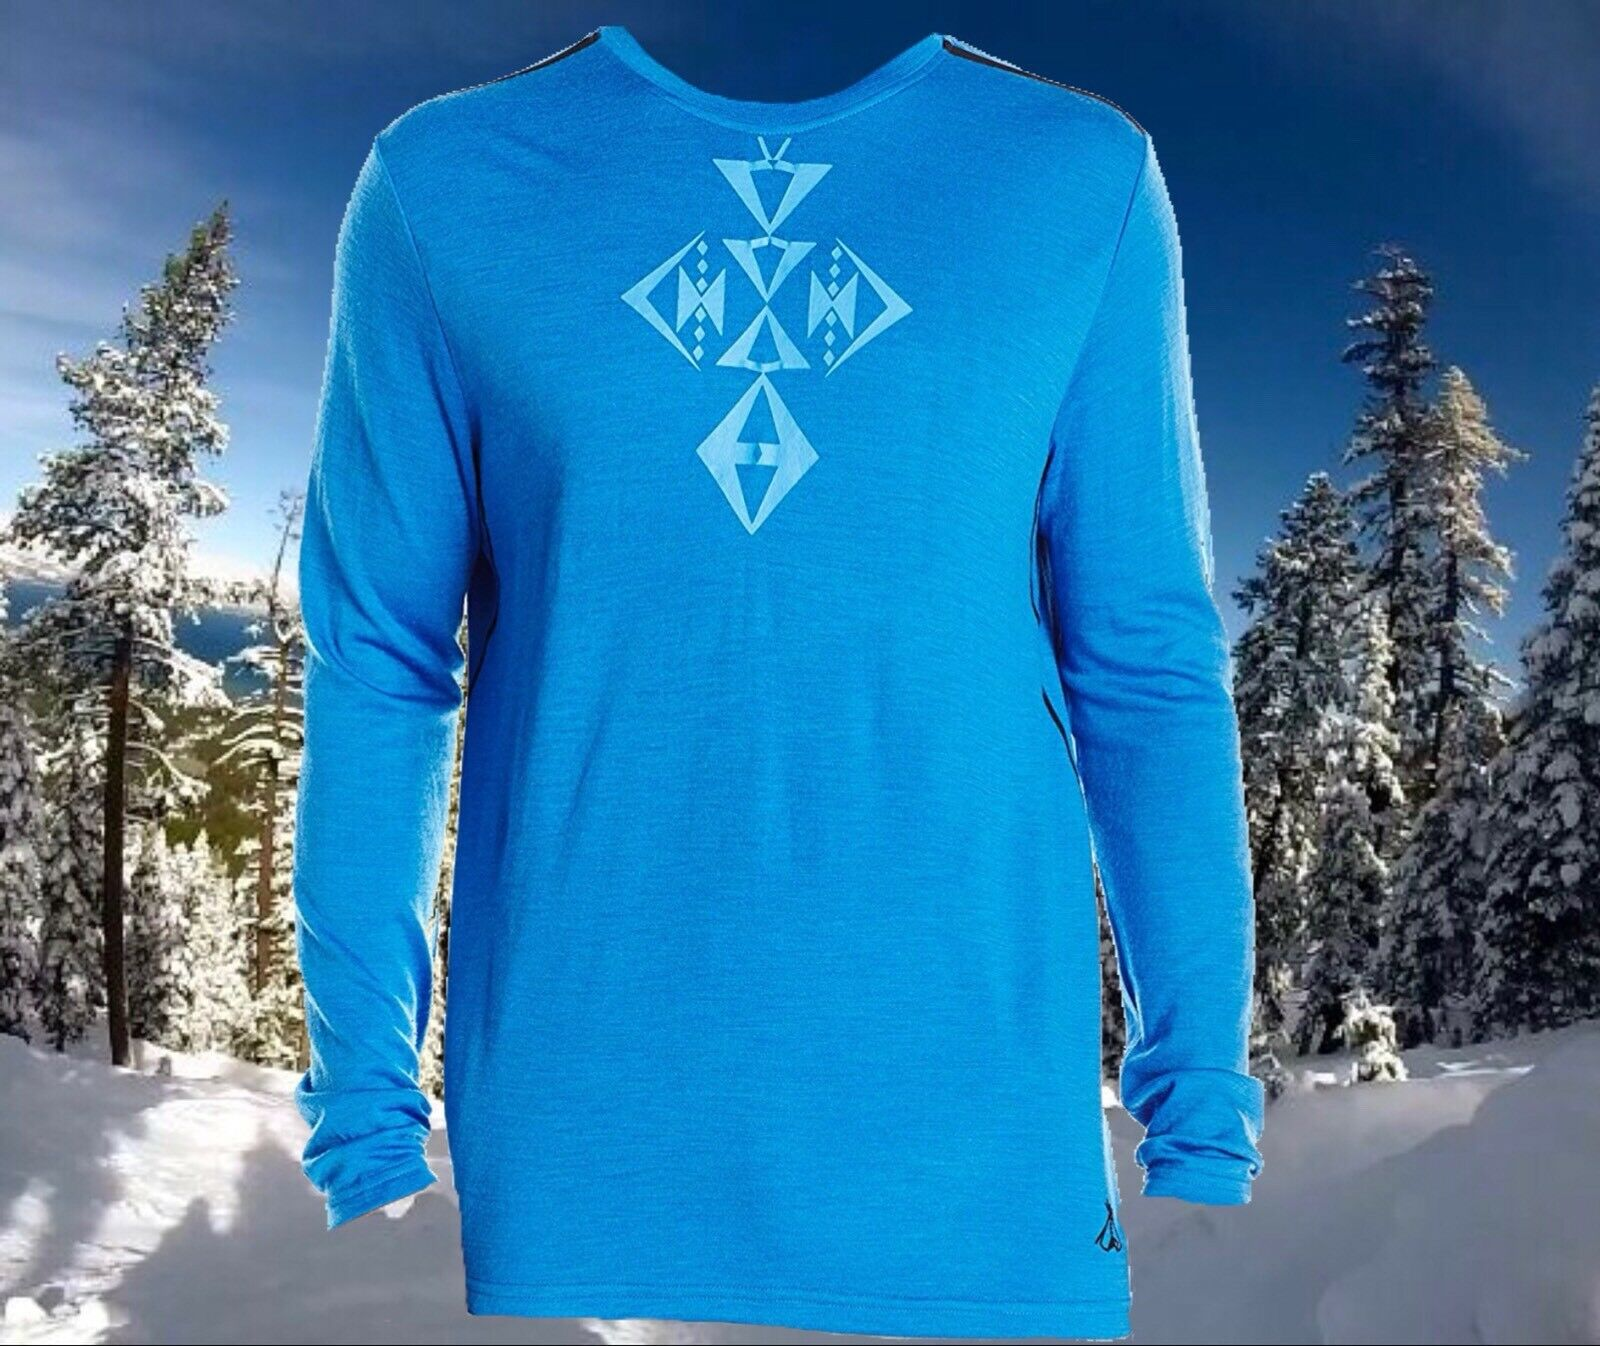 Pendleton Mens Small bluee Soft Merino Wool Base  Layer Ski Snowboard Crew Top Nwt  looking for sales agent